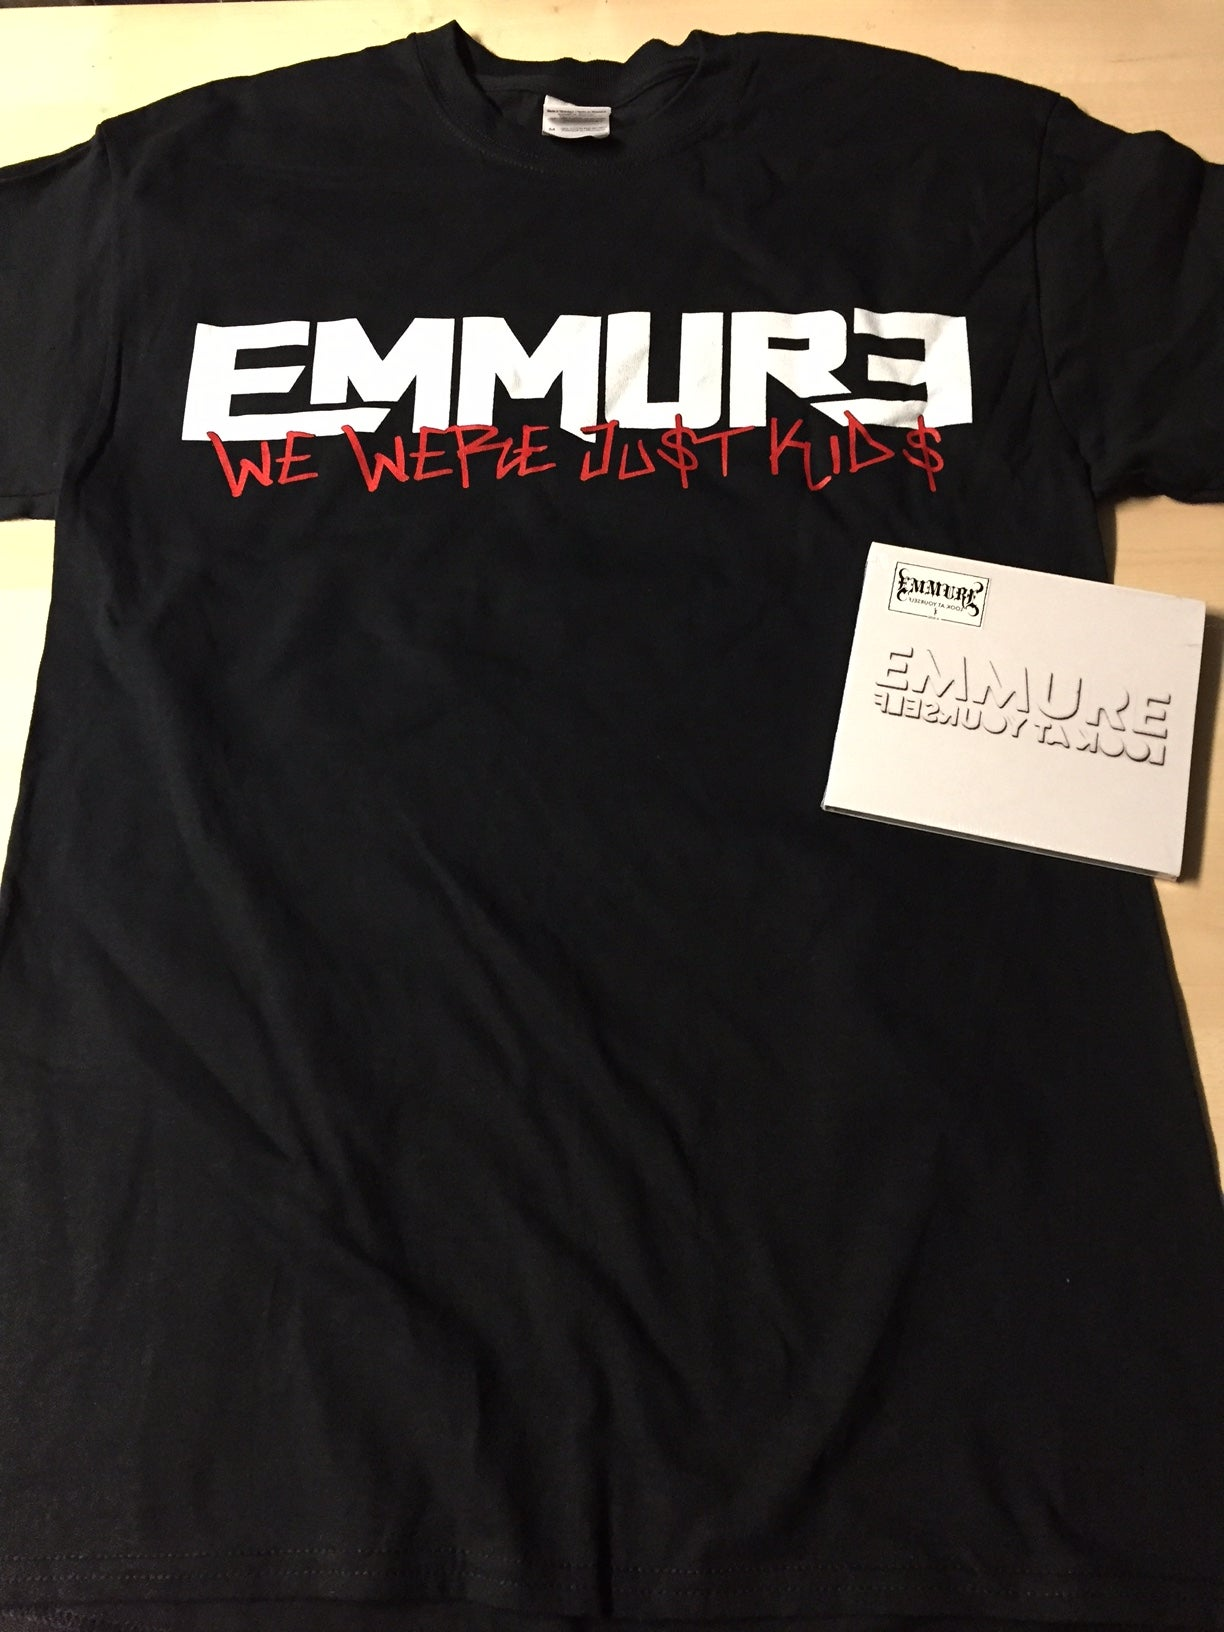 Size M Emmure Look At Yourself Cd Shirt Combo Deal 6 Size S M L Xl